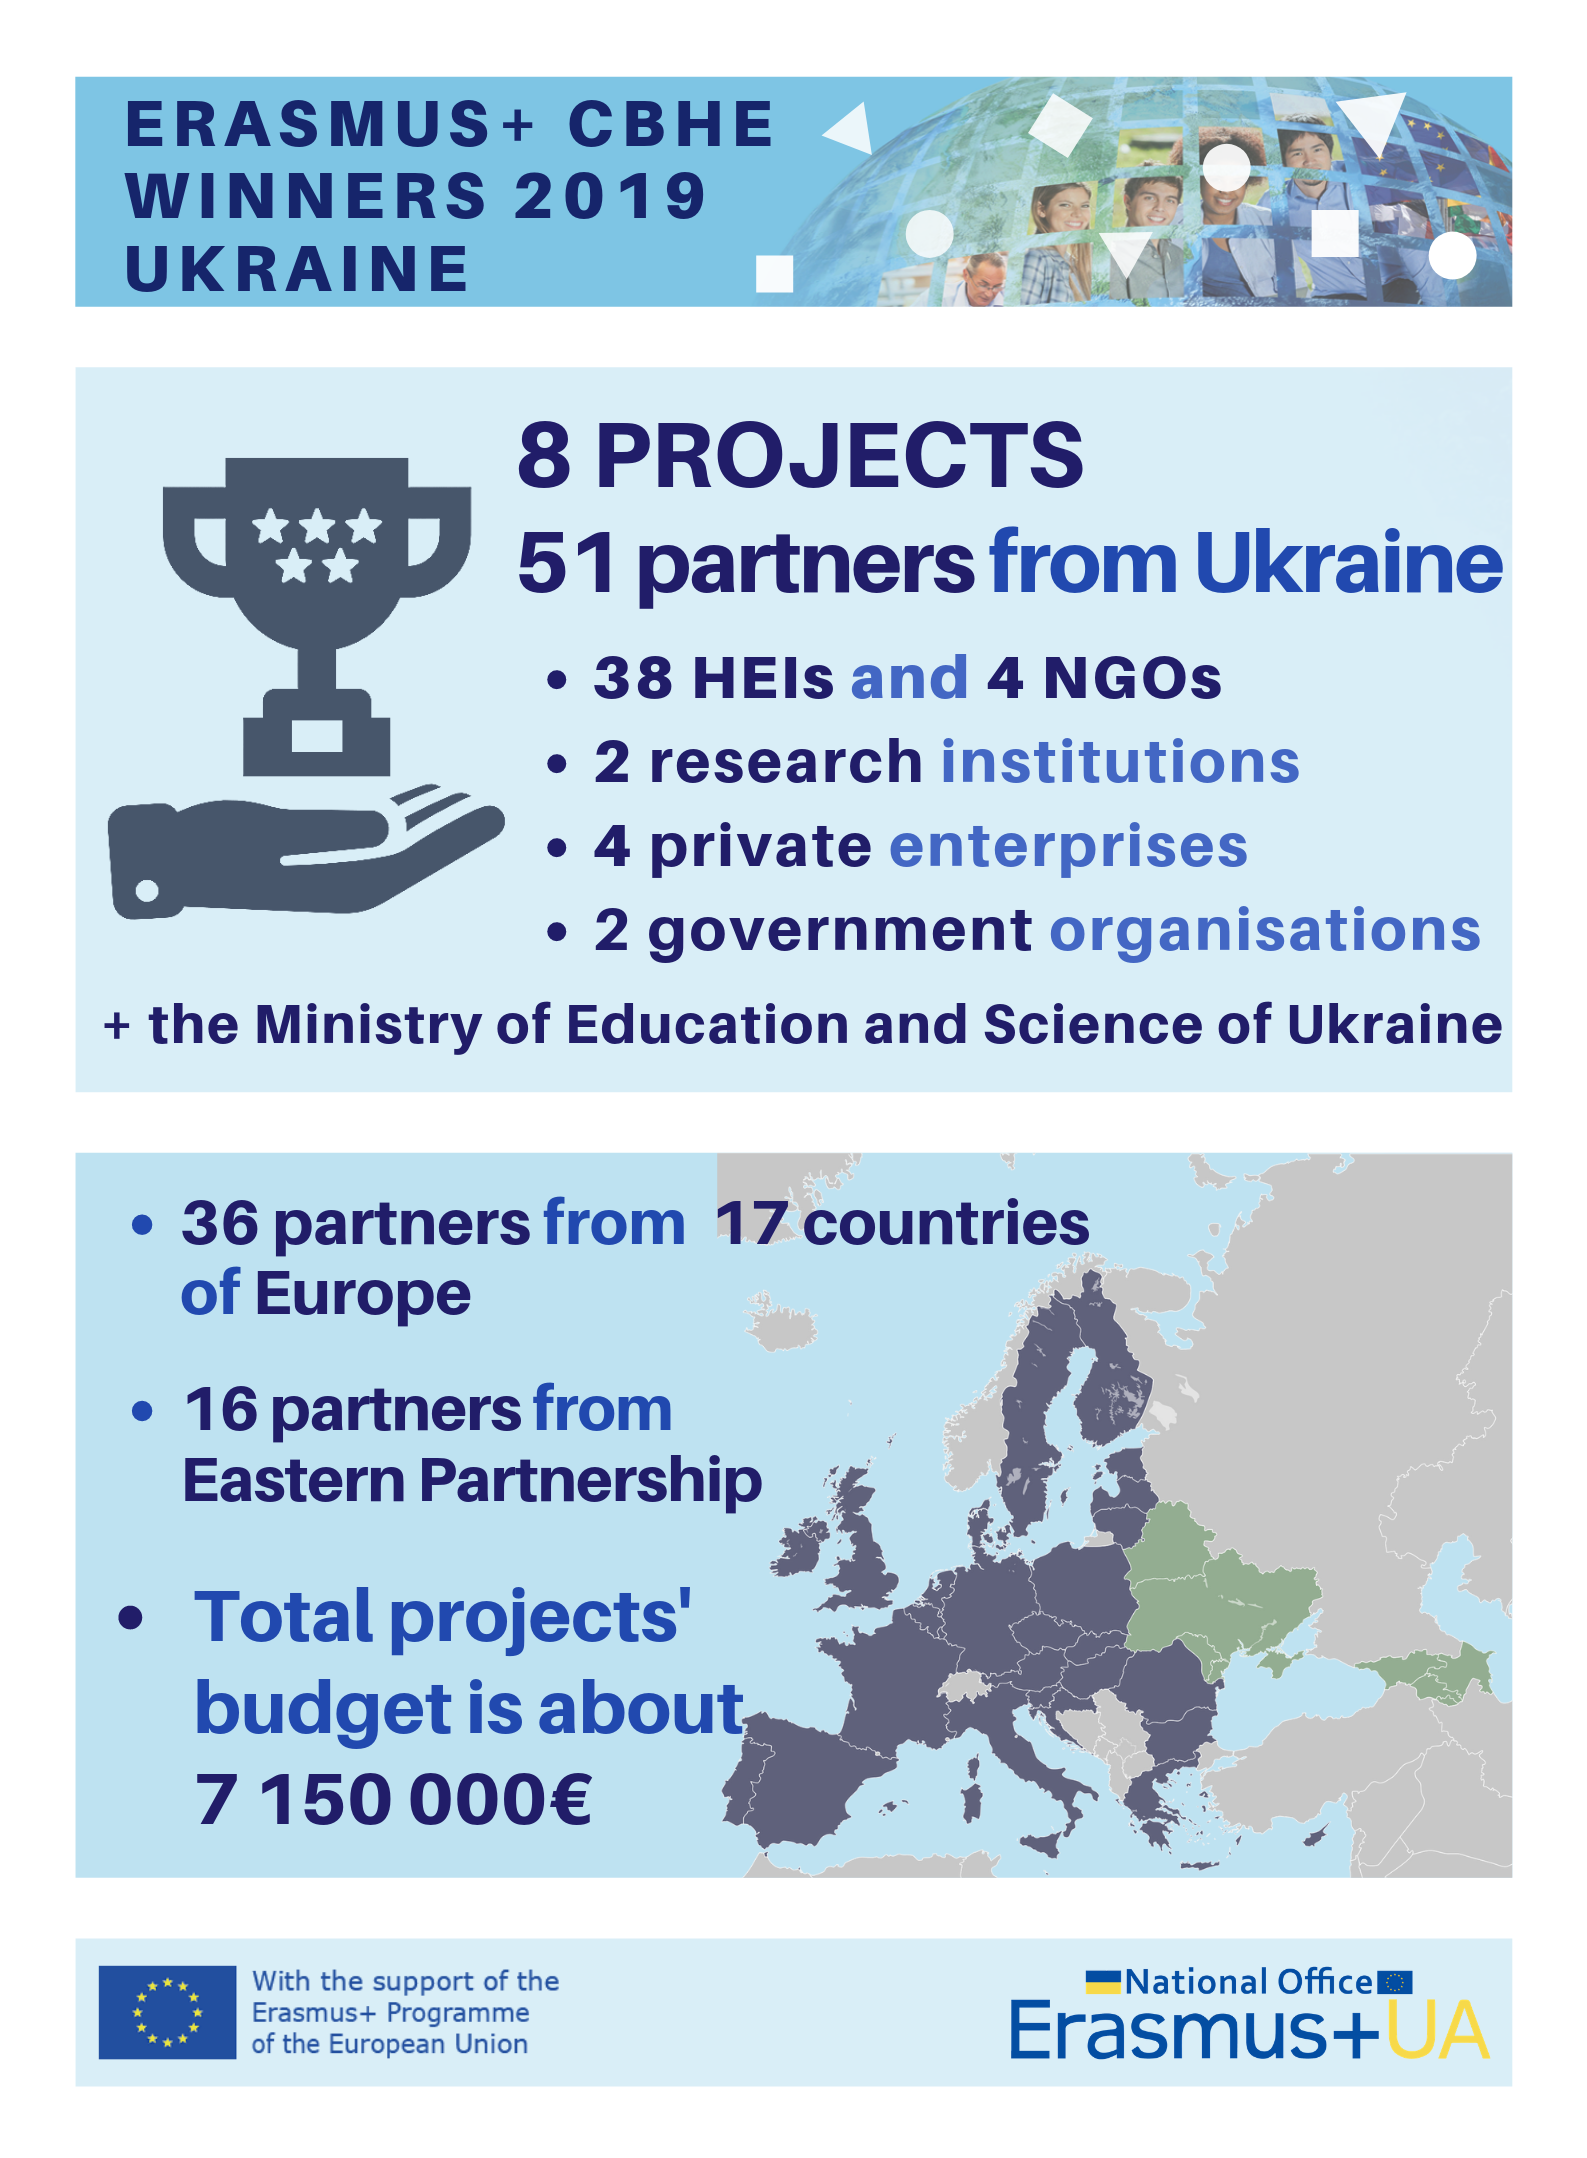 National Erasmus+ Office in Ukraine